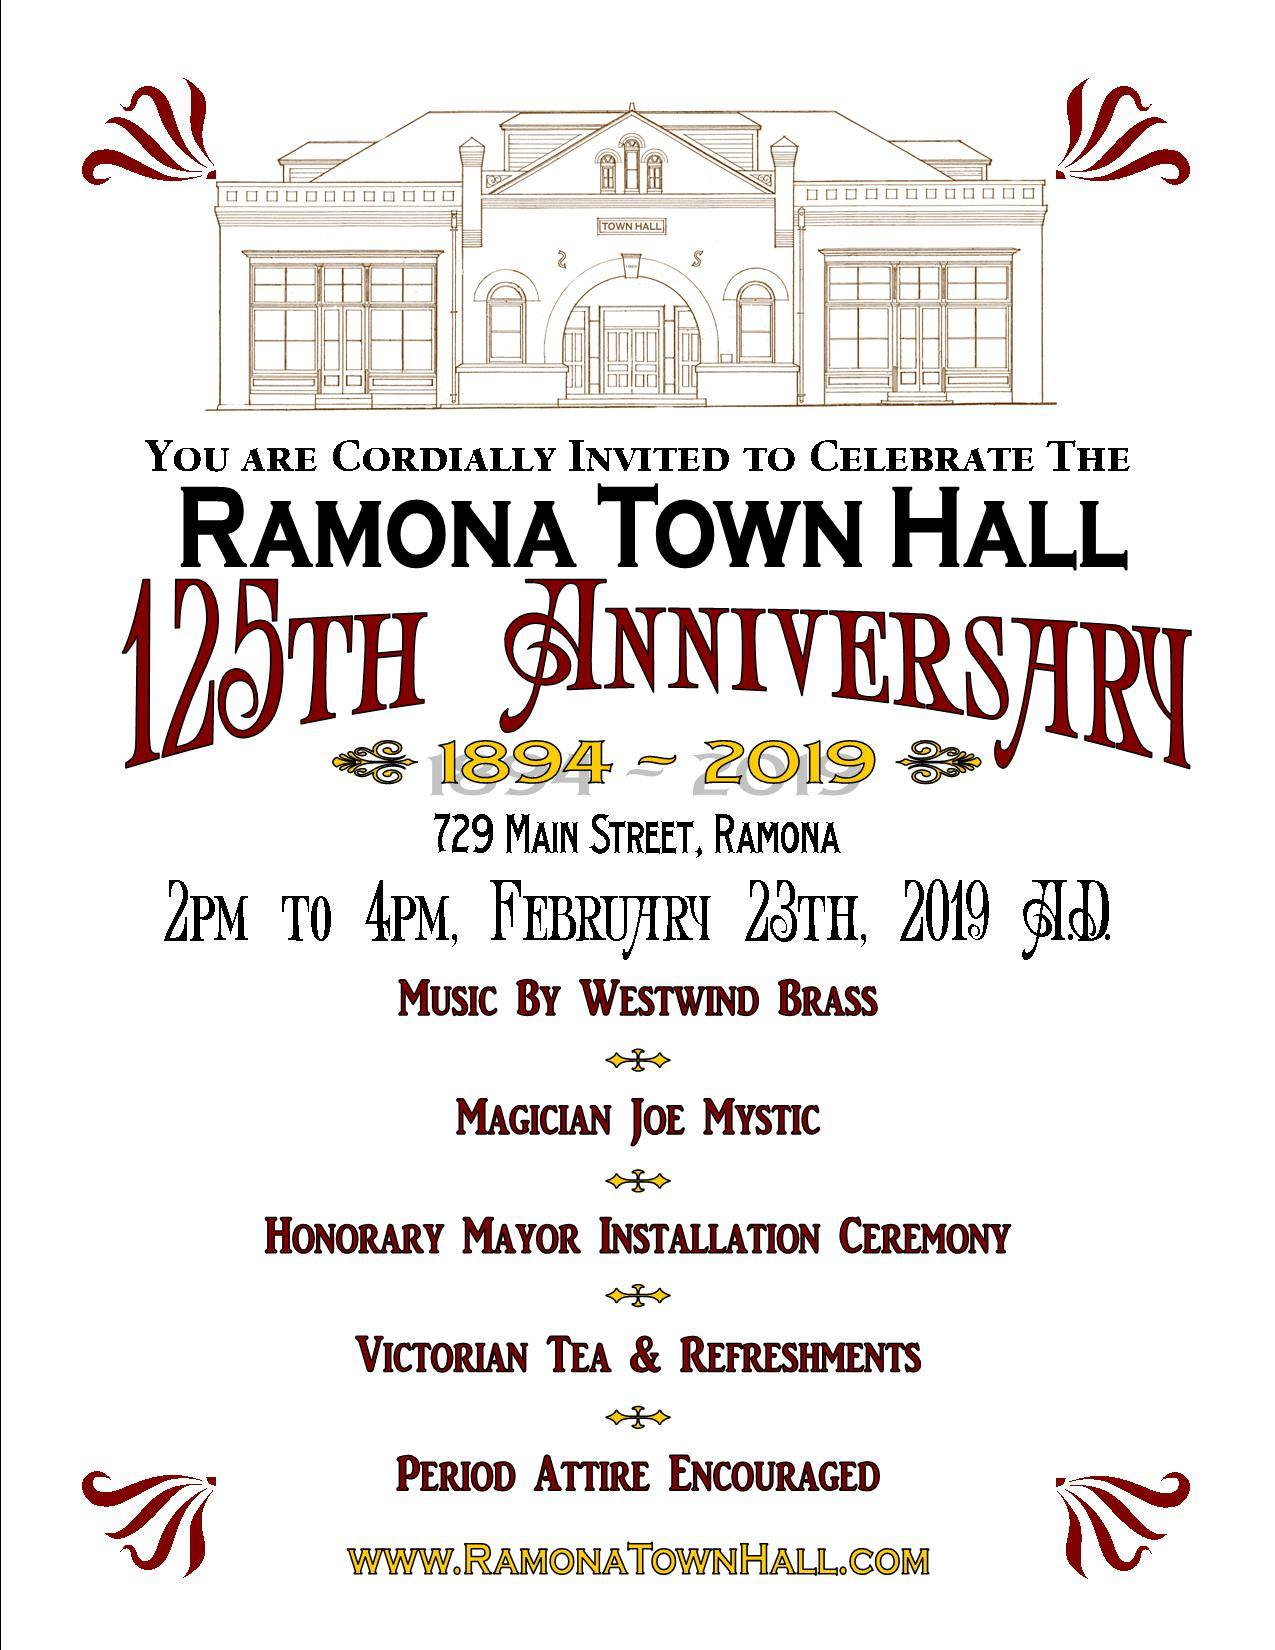 Ramona Town Hall 125th Anniversary